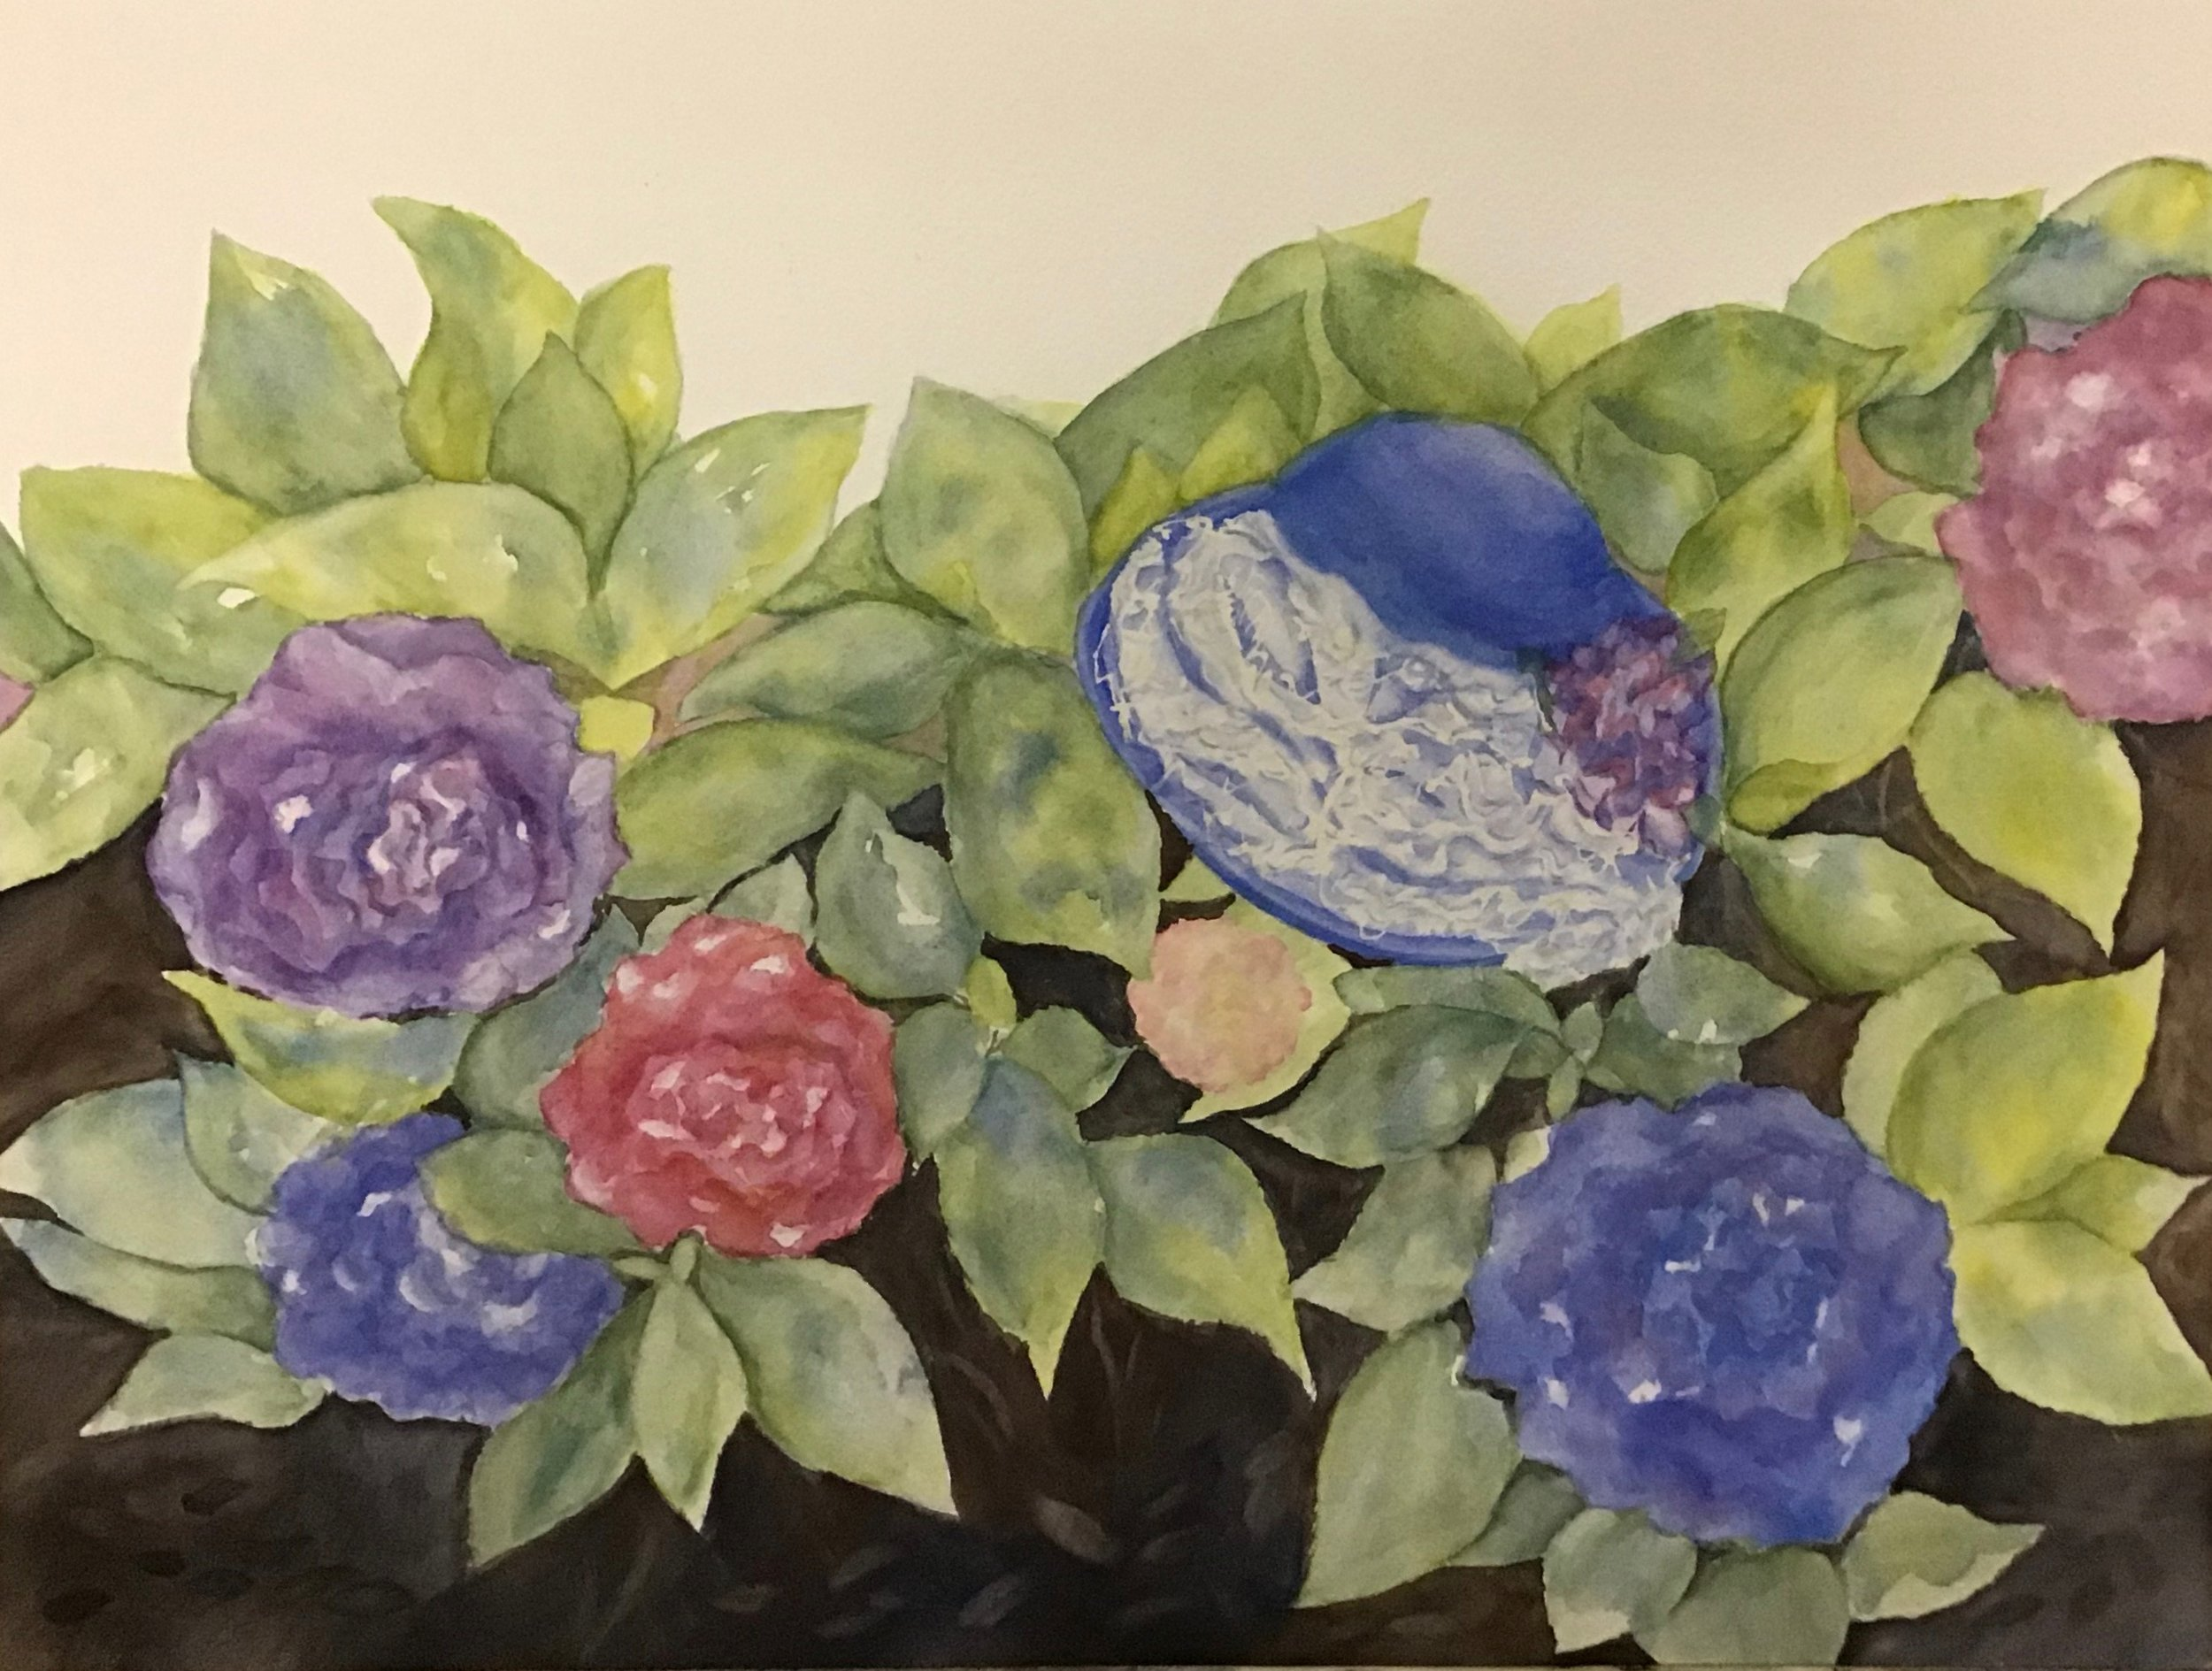 Adding he darks helped to highlight the leaves and the flowers as a lot was in the mid value range